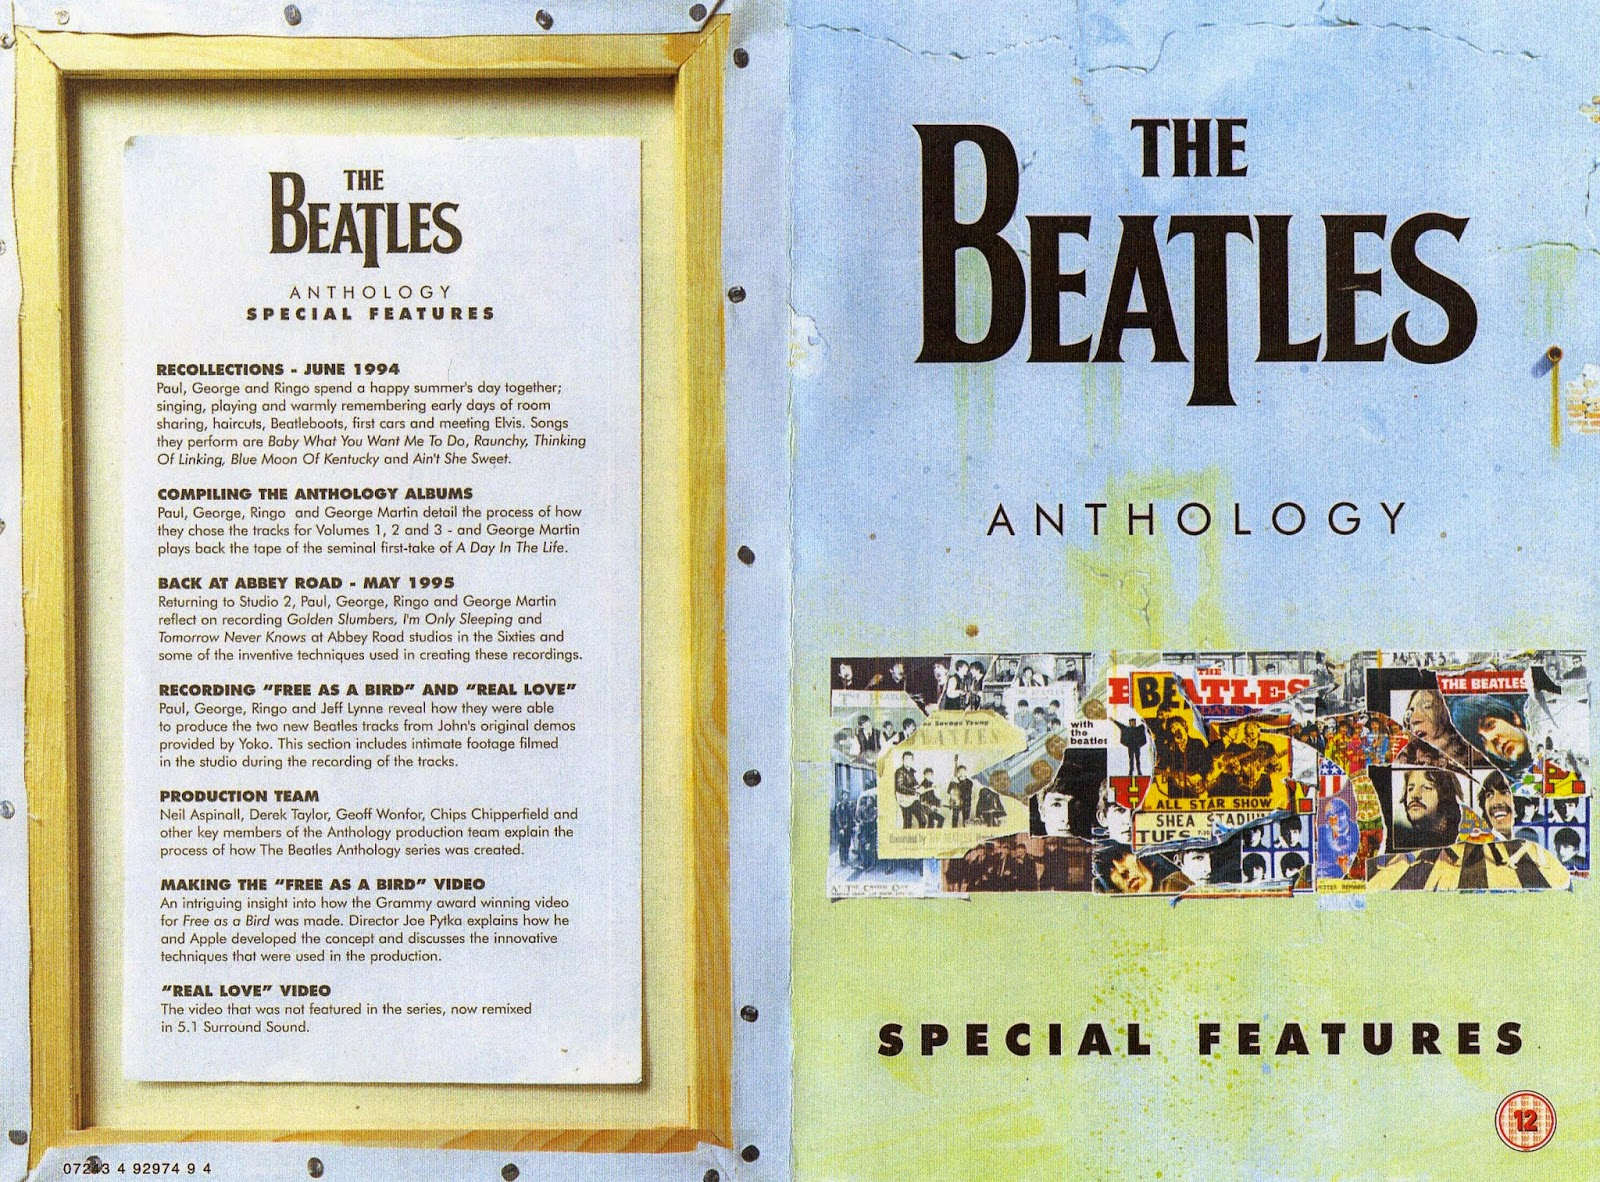 http://danielc61.blogspot.com.ar/2014/10/the-beatles-anthology-movie-todo.html